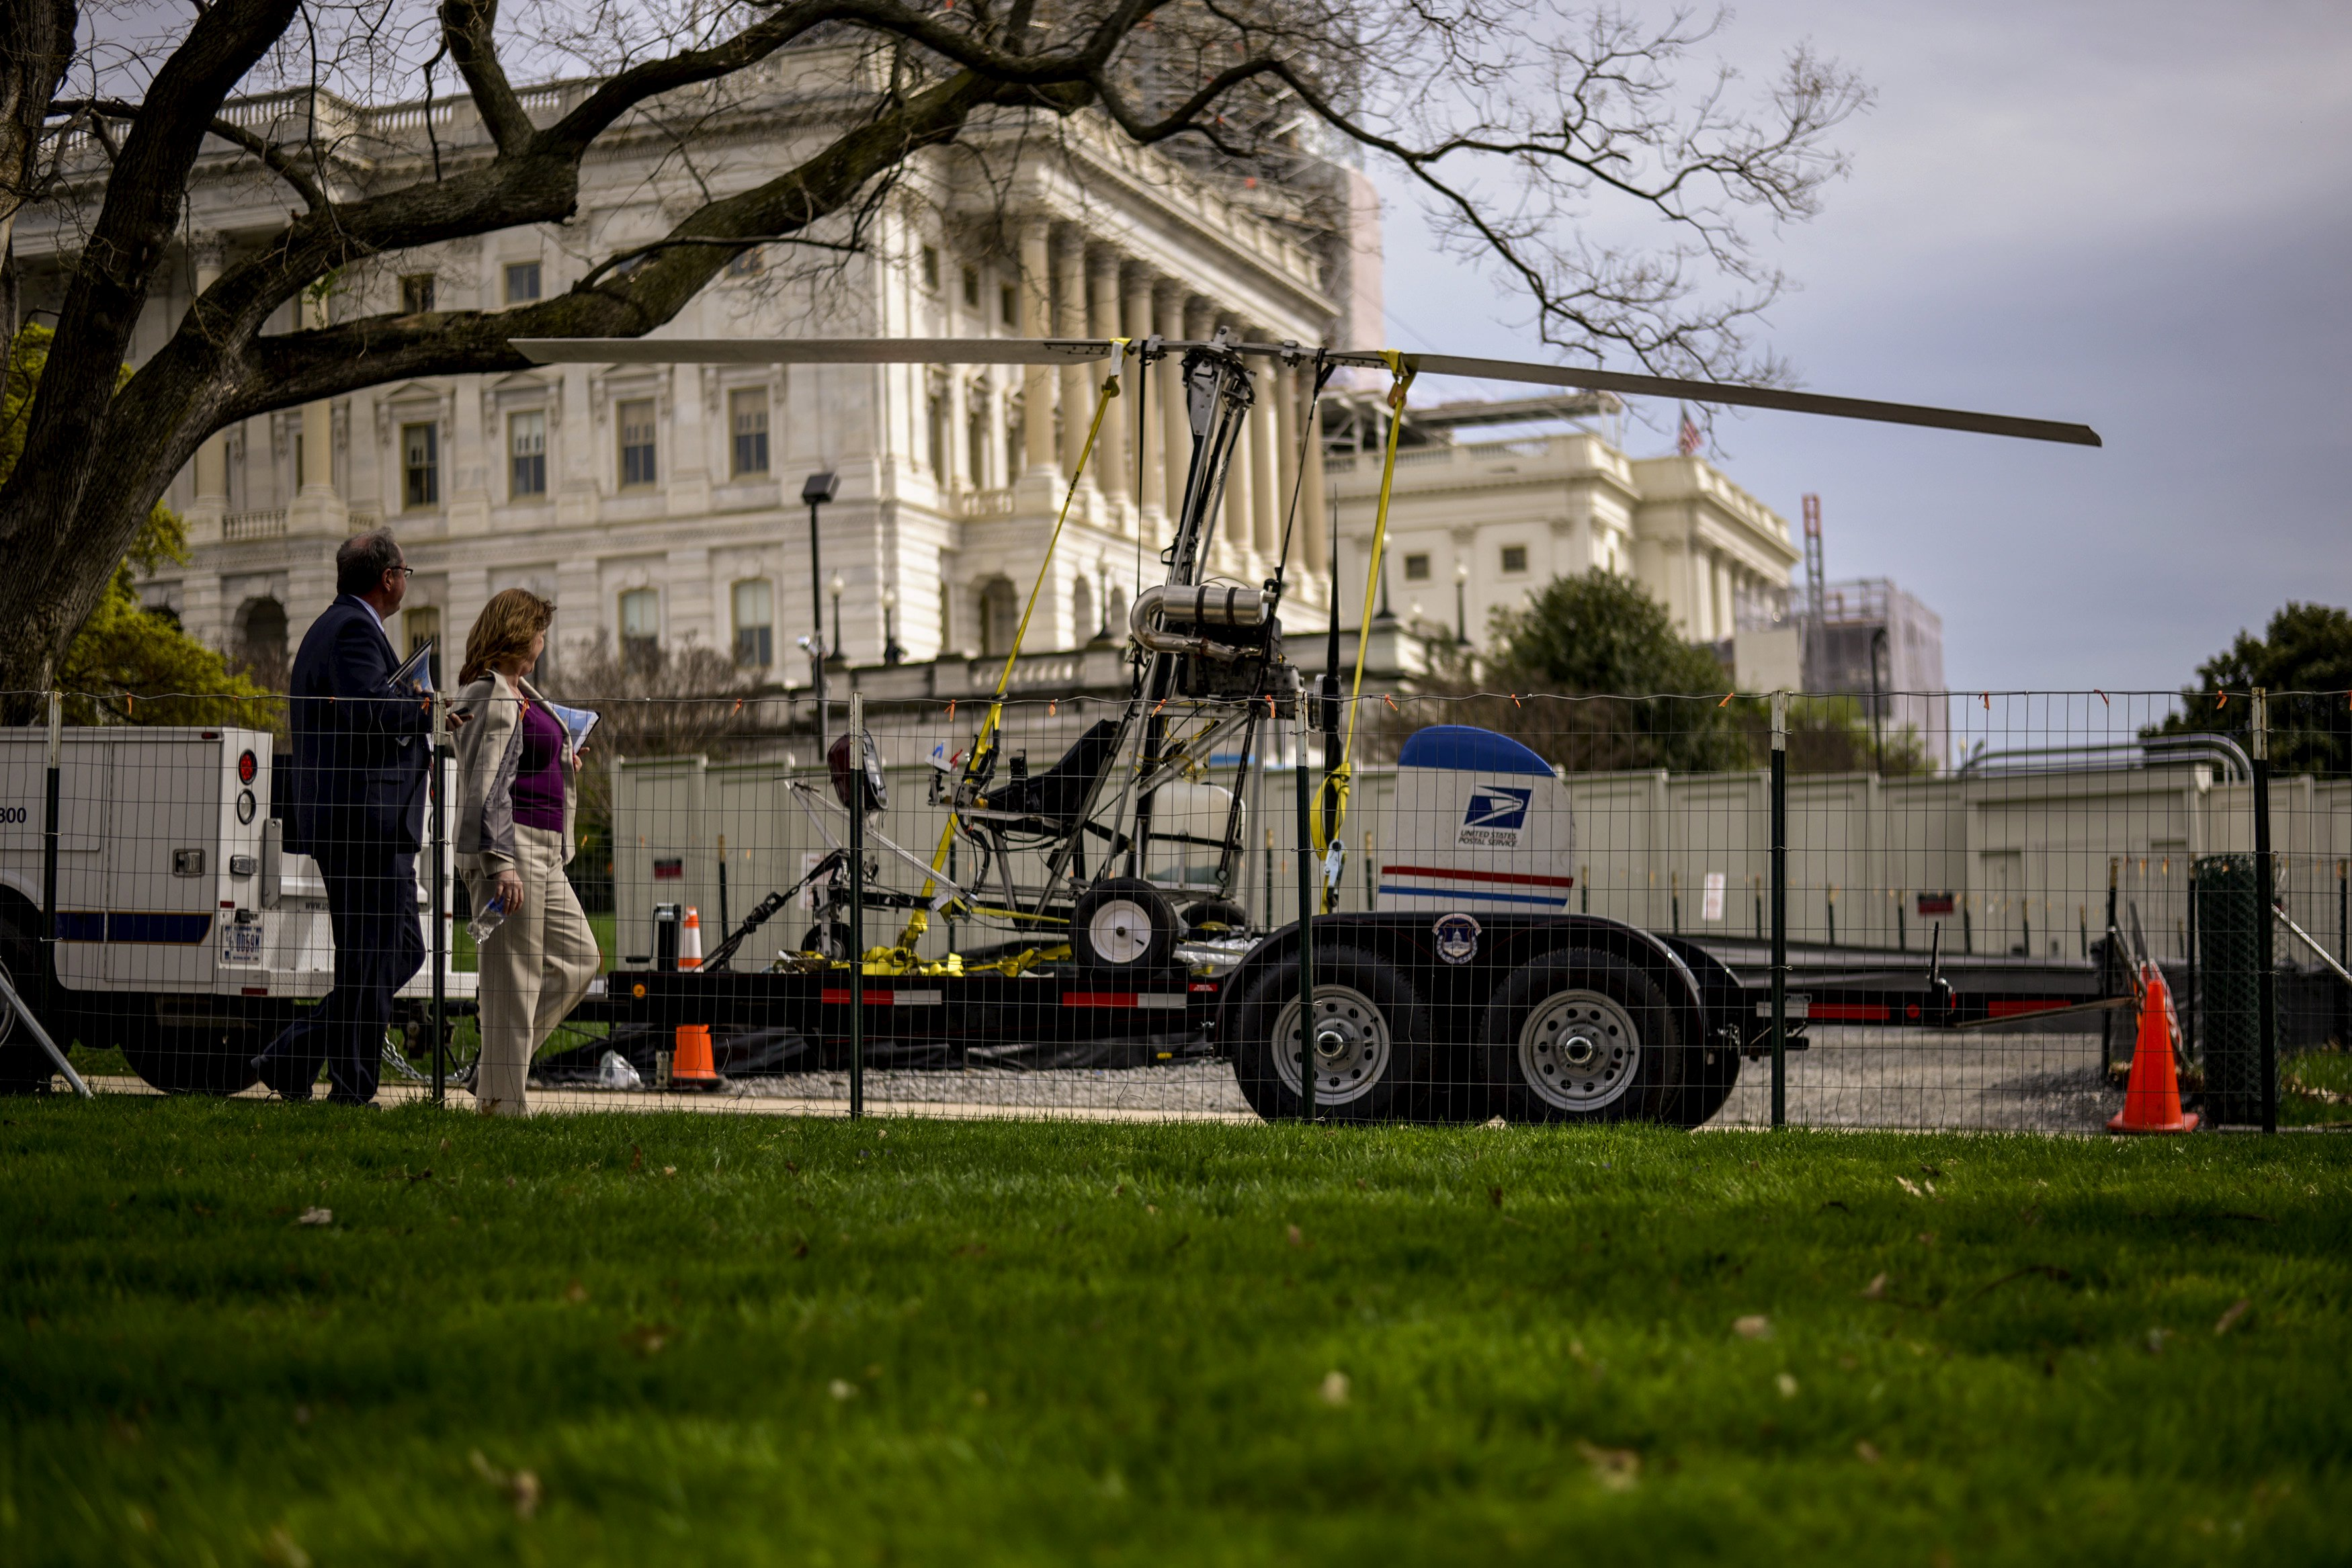 Florida man arrested after landing small helicopter on U.S. Capitol grounds